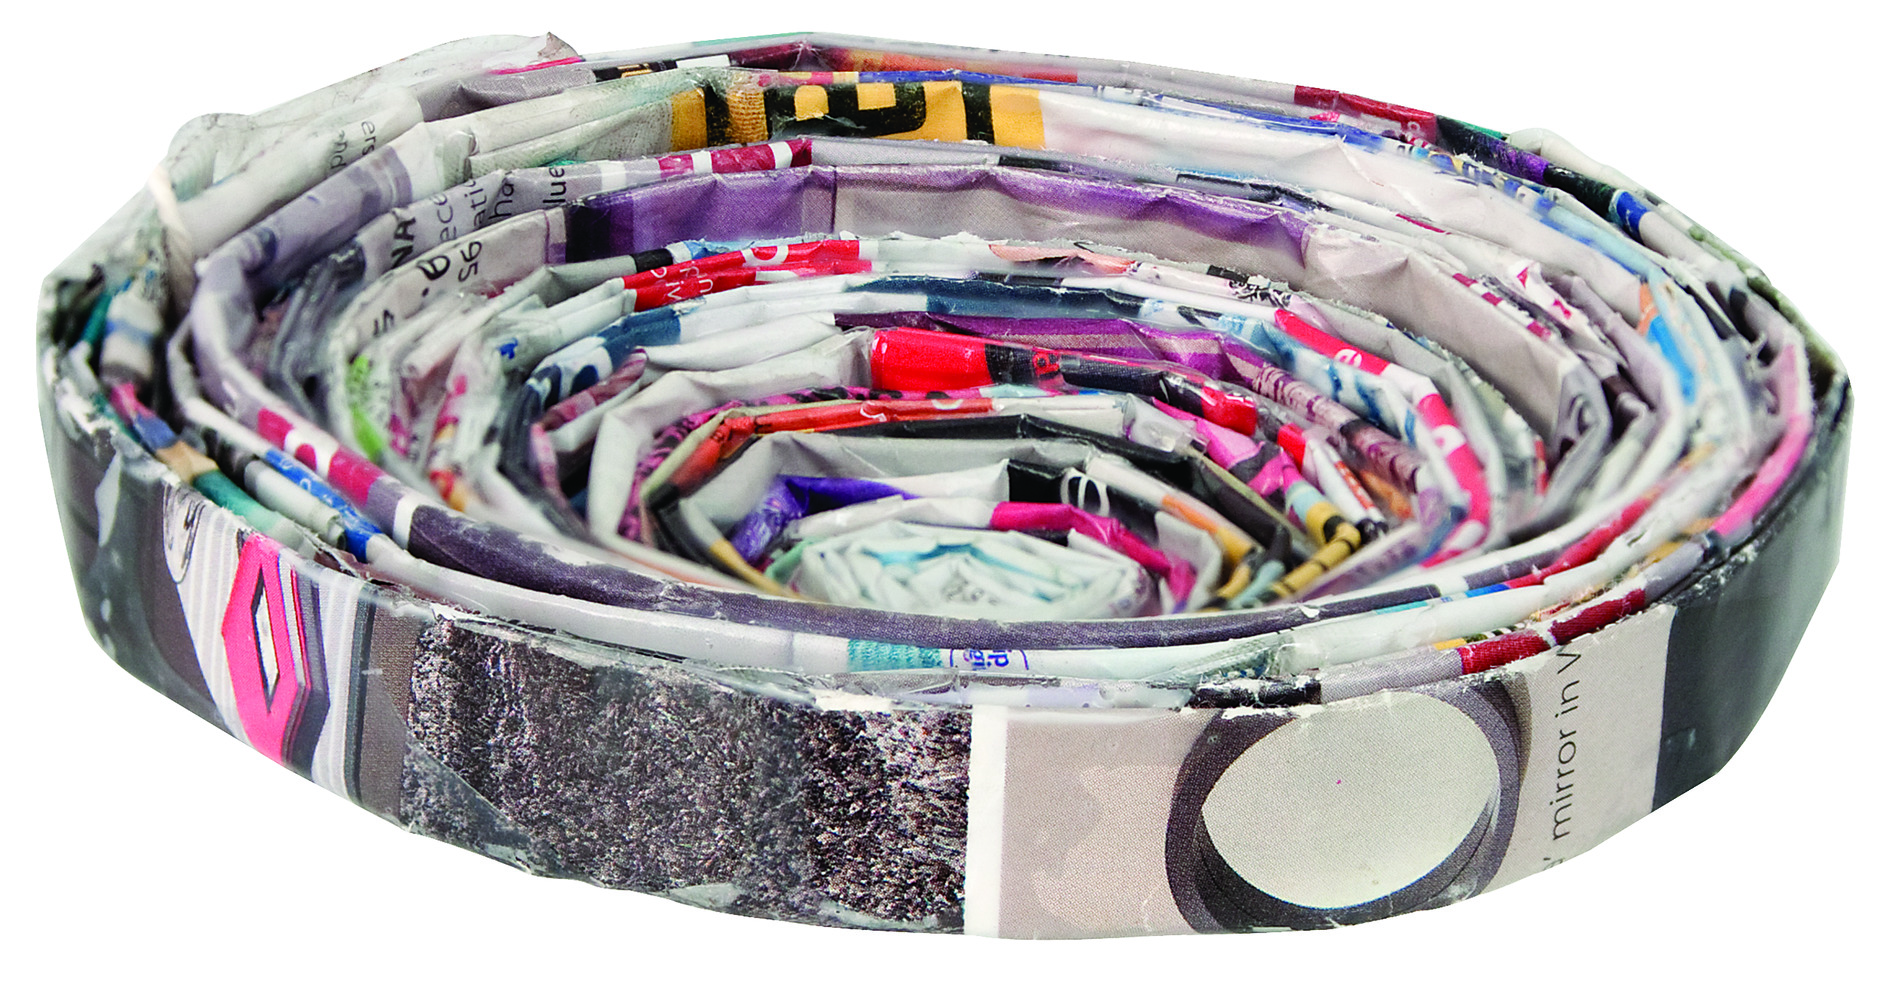 Recycled Magazine Bowls 2